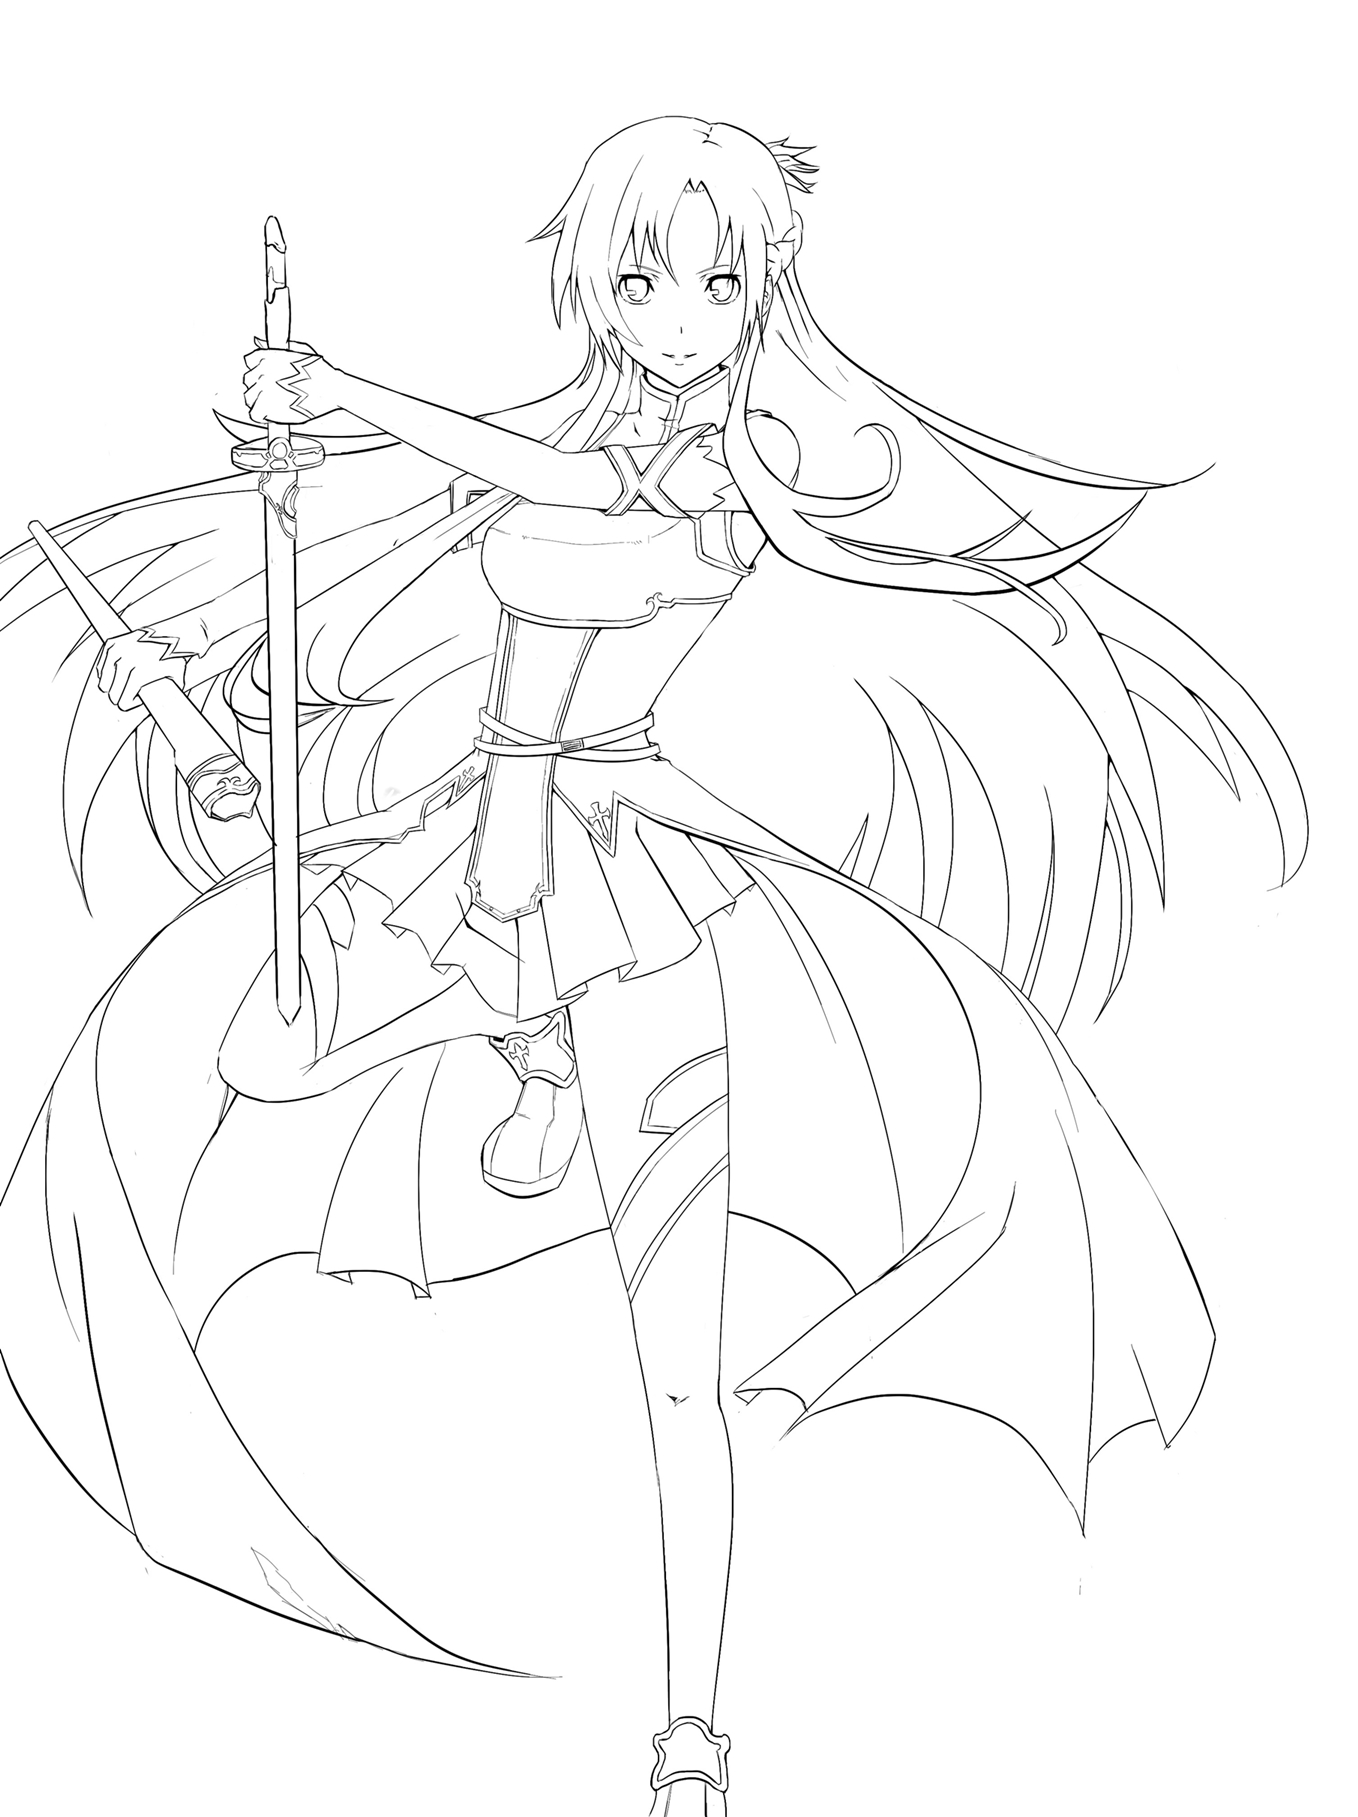 anime girl with swords coloring pages | Asuna Lineart sword art online by vaghot on DeviantArt